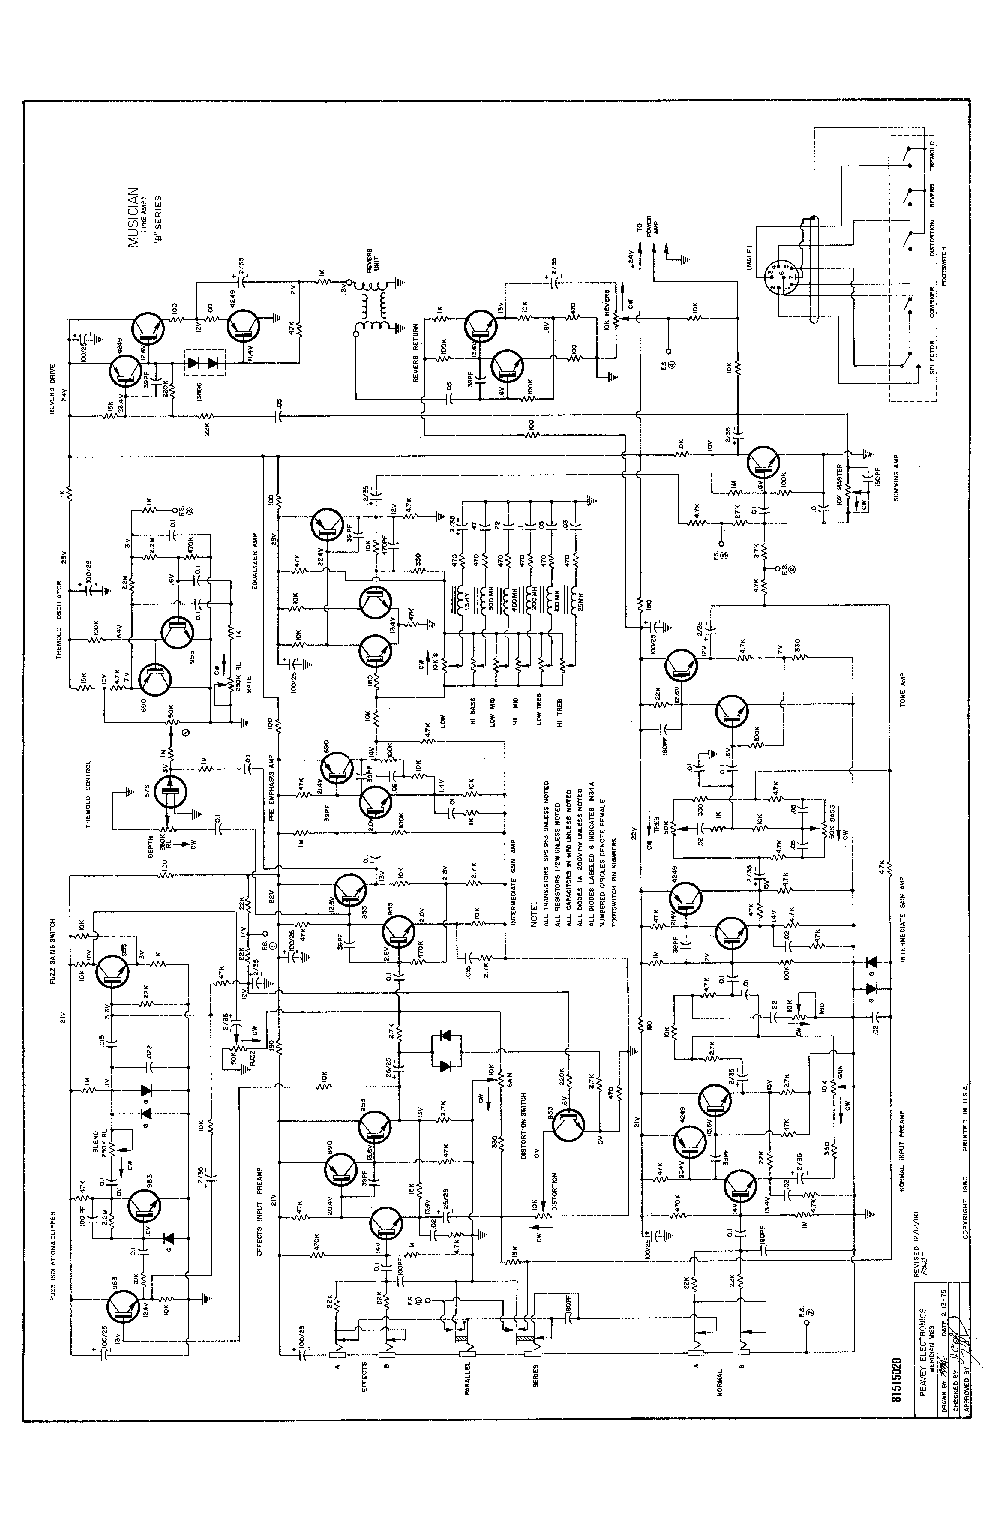 peavey_400_module_b_series_sch.pdf_1 harman kardon hk395 schematic wiring diagrams wiring diagrams harman kardon hk395 wiring diagram at suagrazia.org